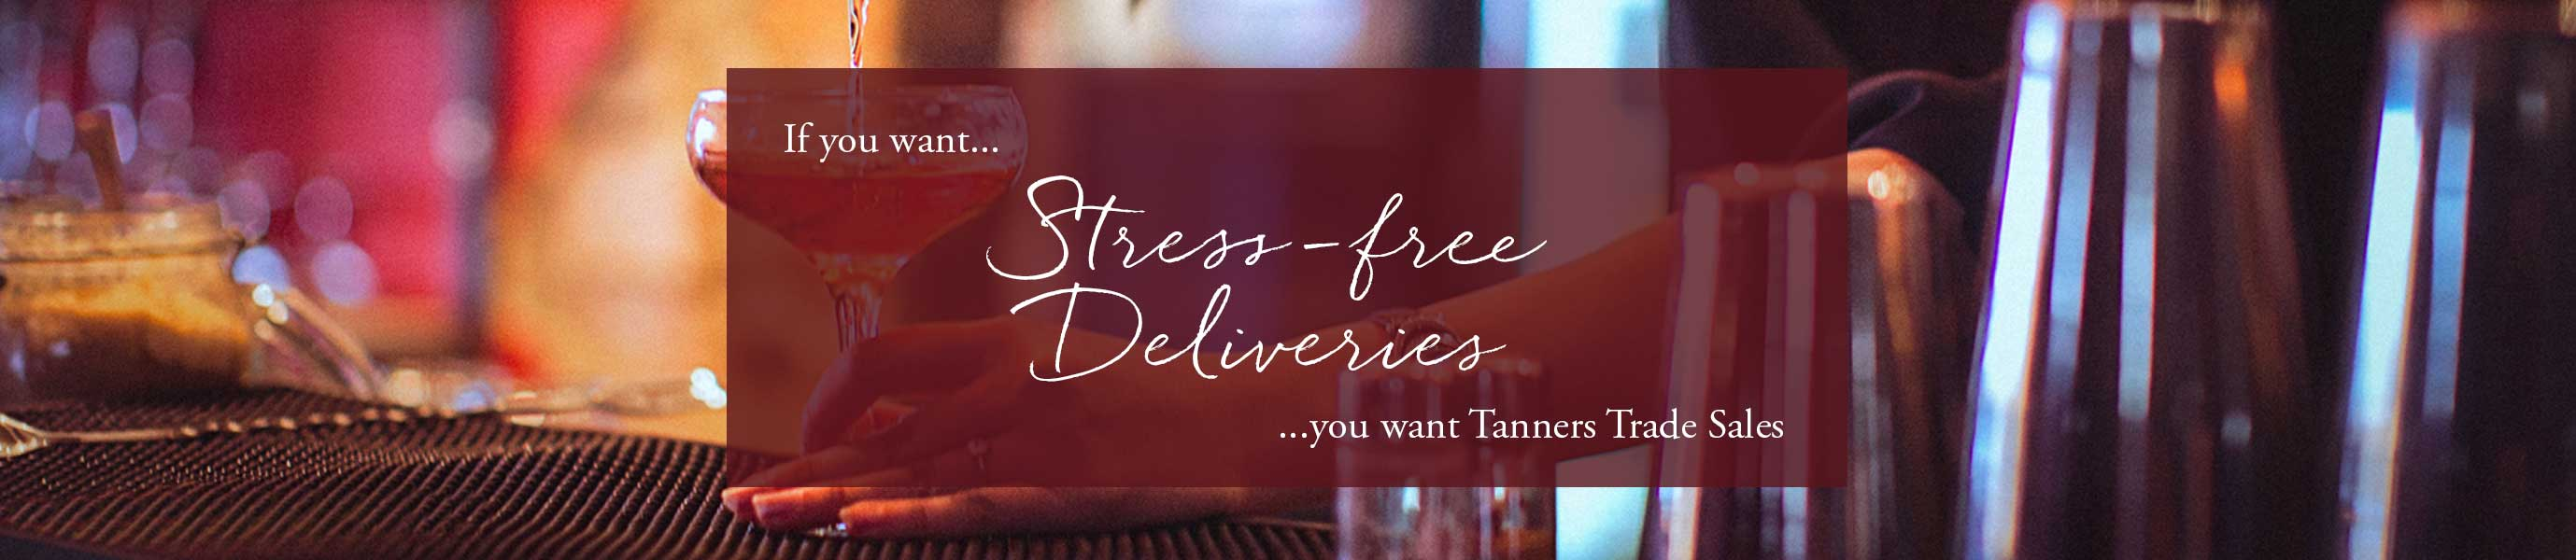 Enjoy Stress Free Deliveries with Tanners trade